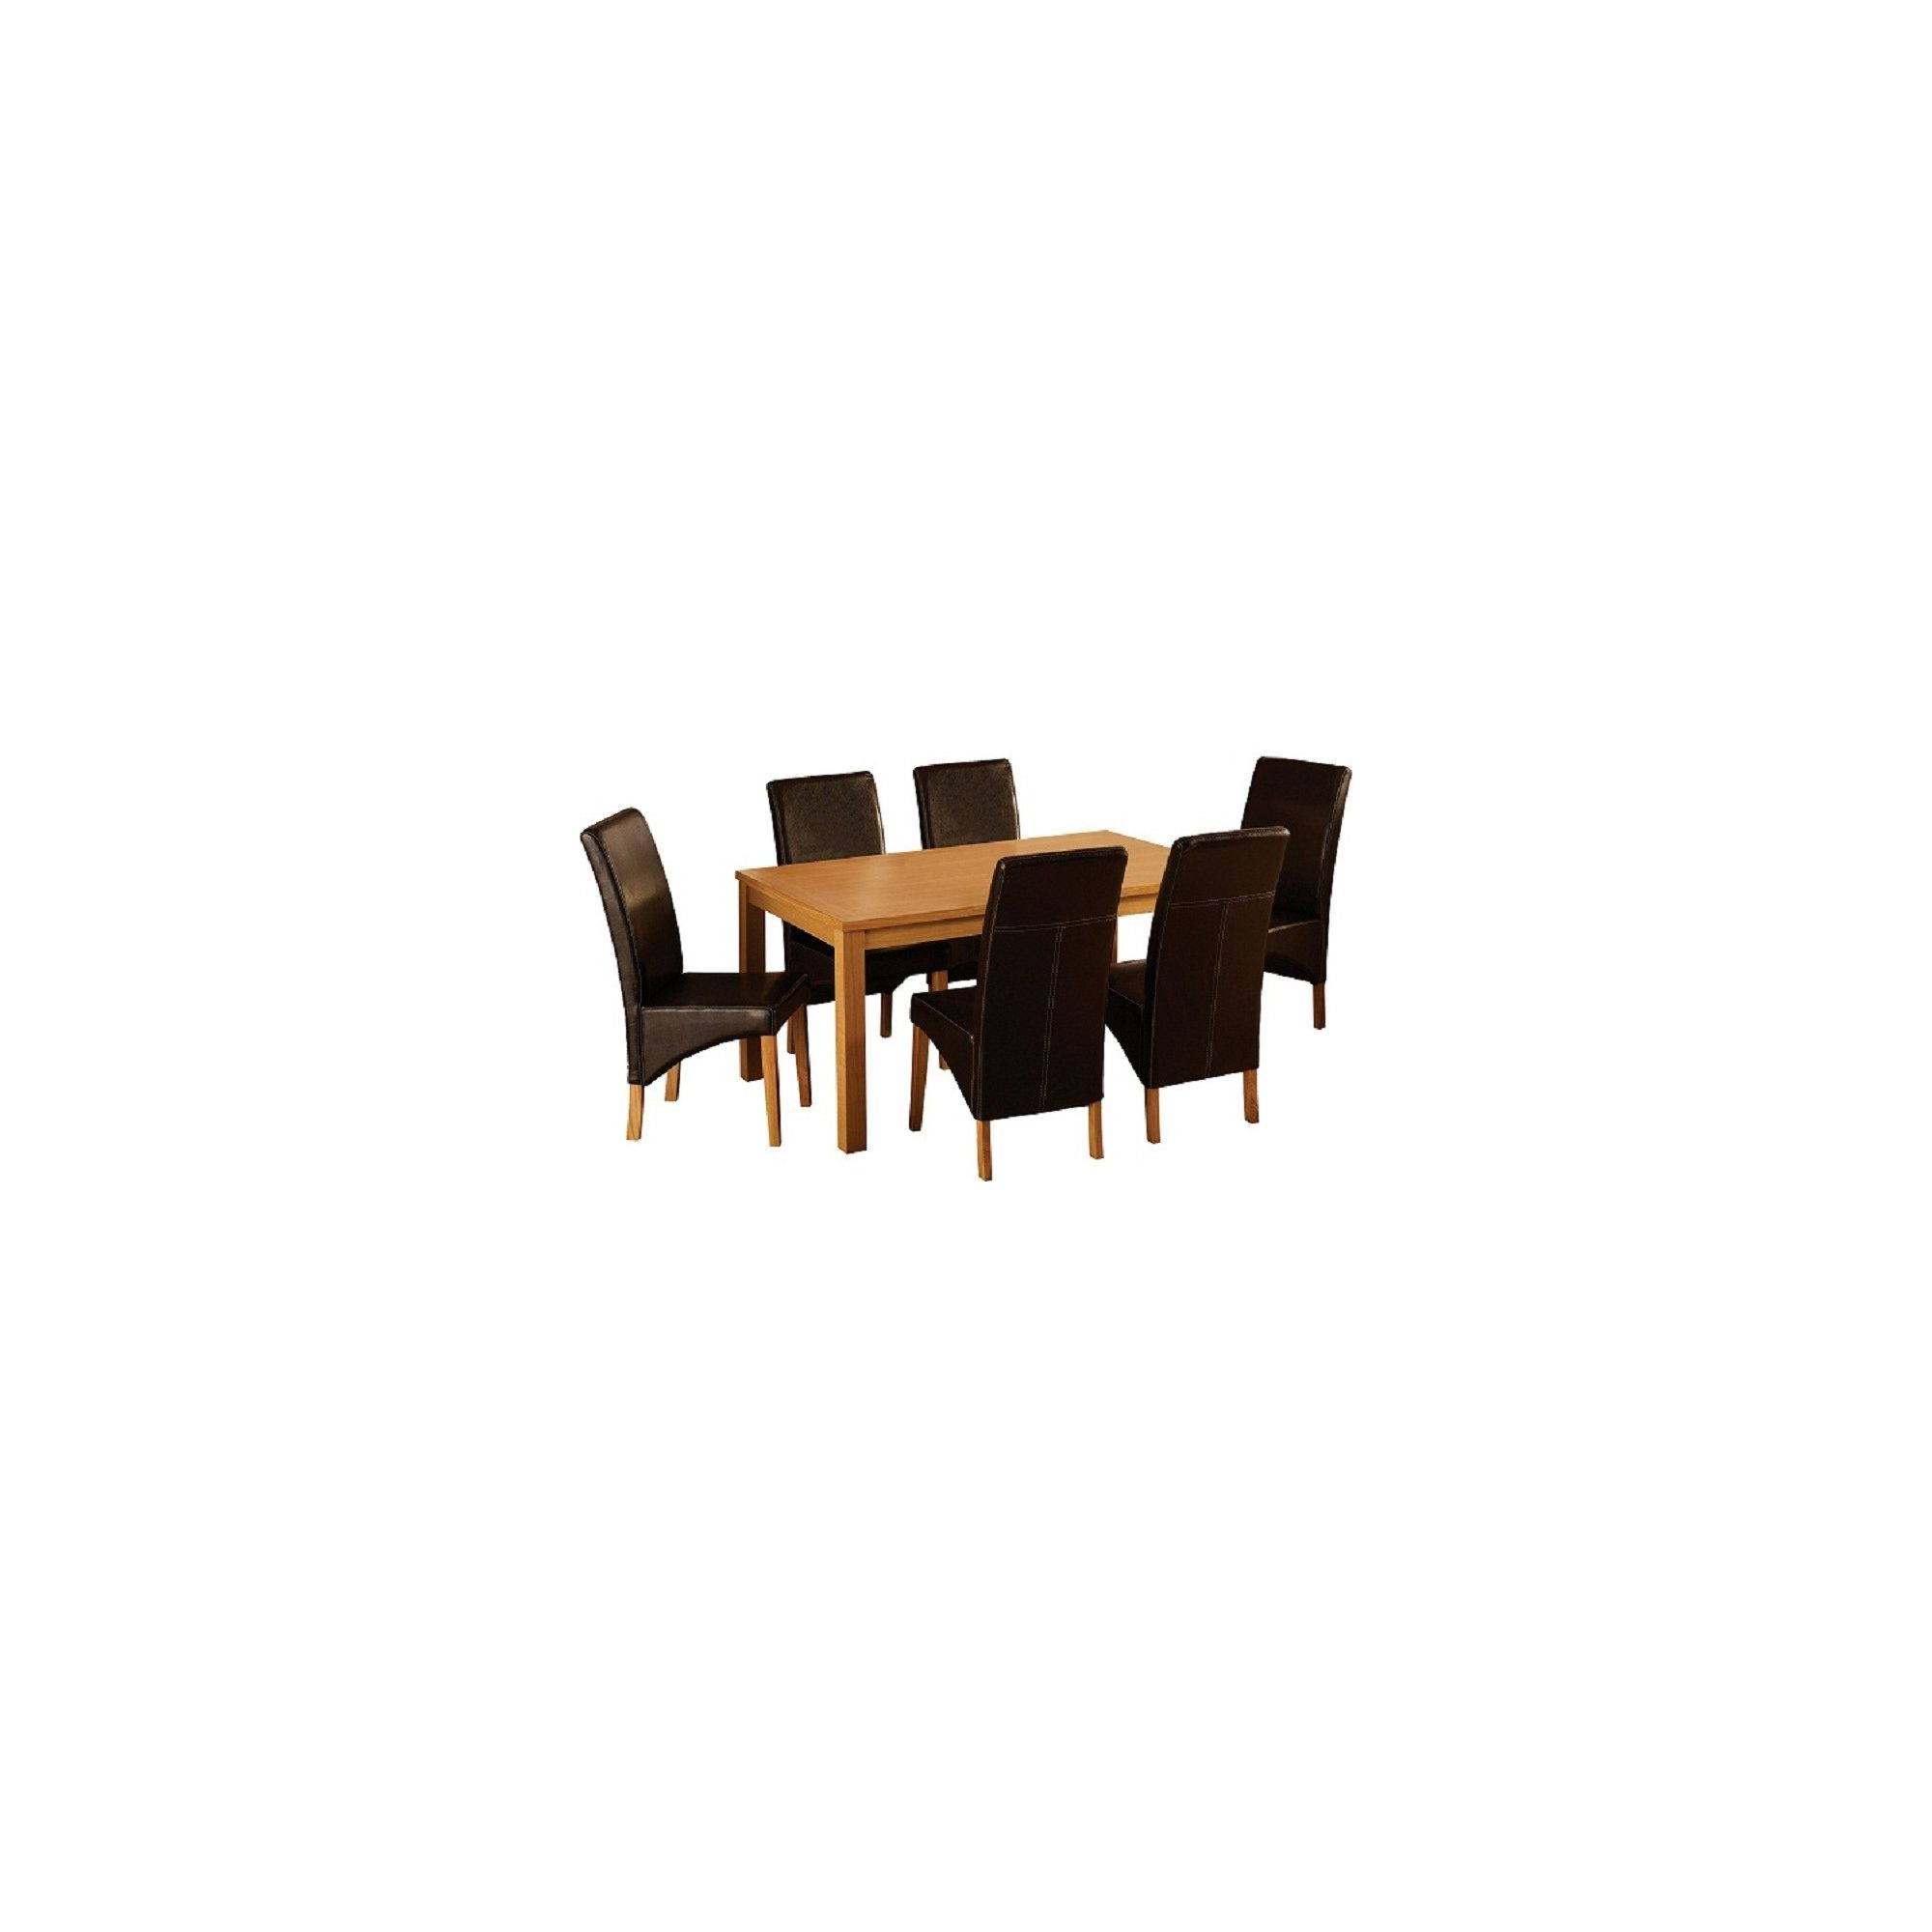 Home Essence Belgravia 7 Piece Dining Set - Espresso Brown at Tescos Direct